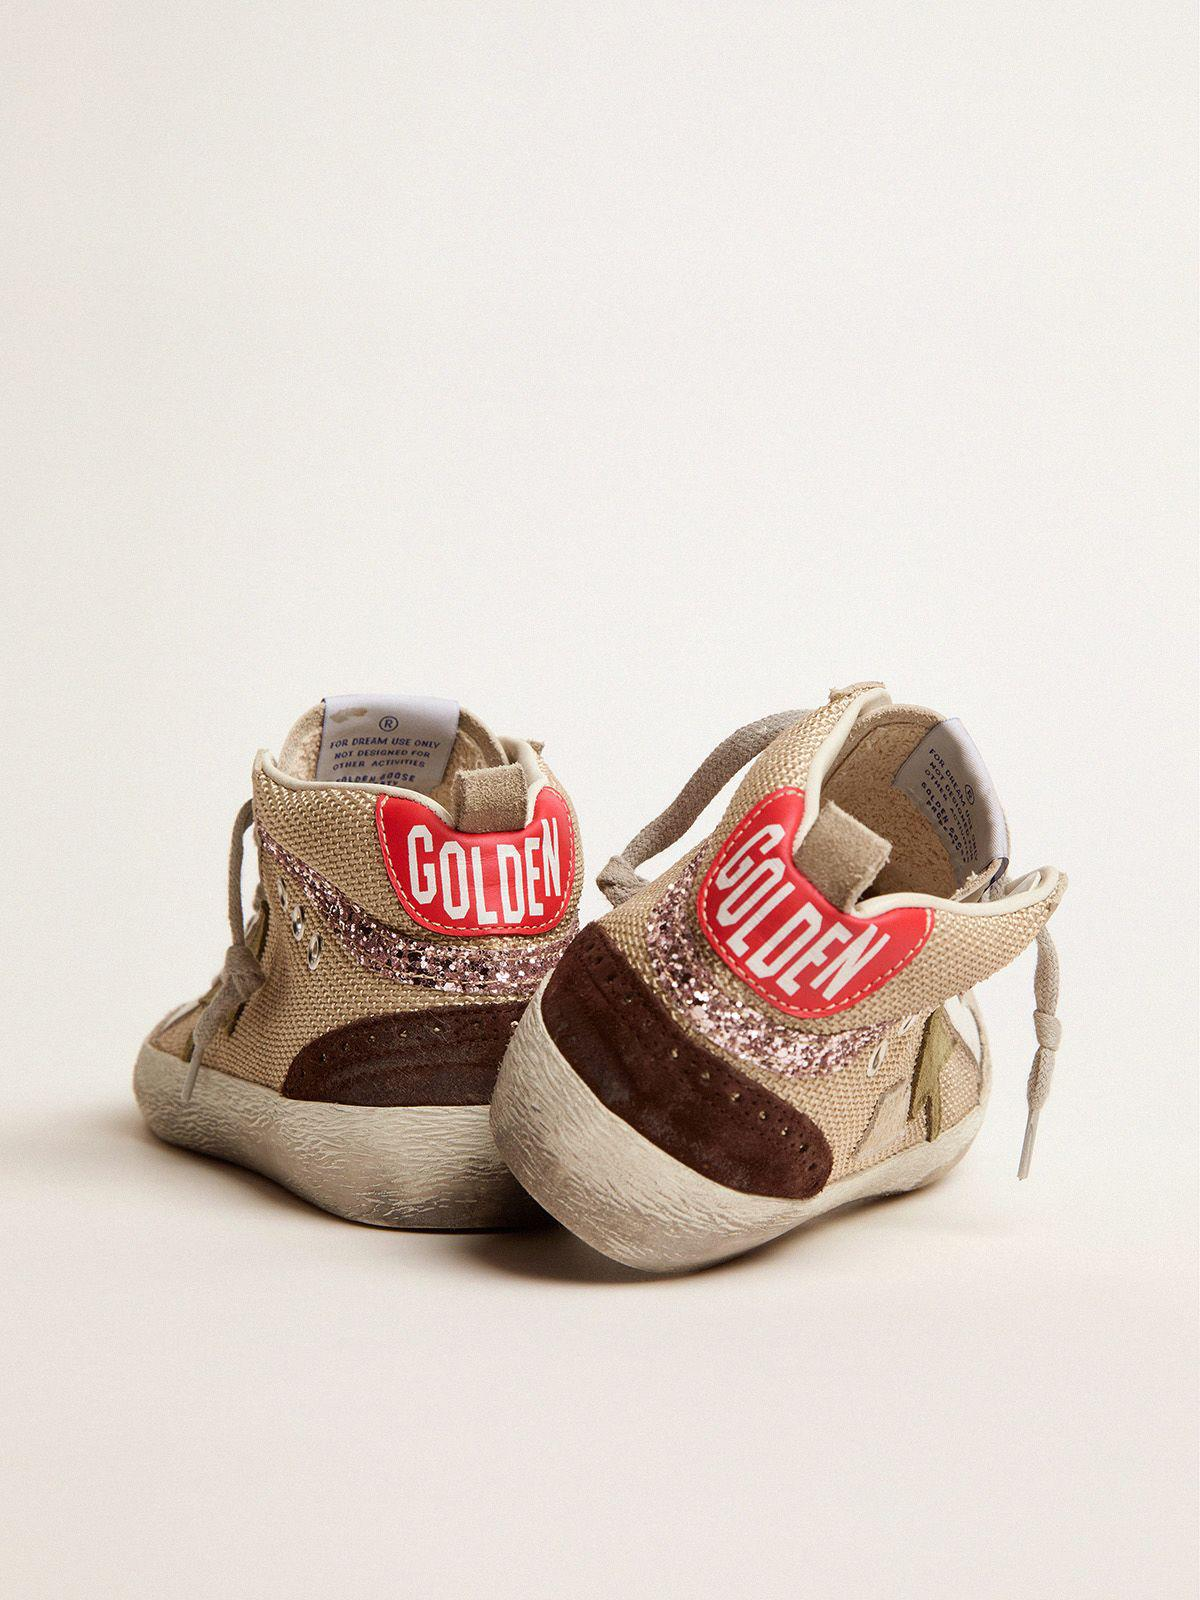 Mid Star sneakers in cream-colored mesh with suede and glitter details 3